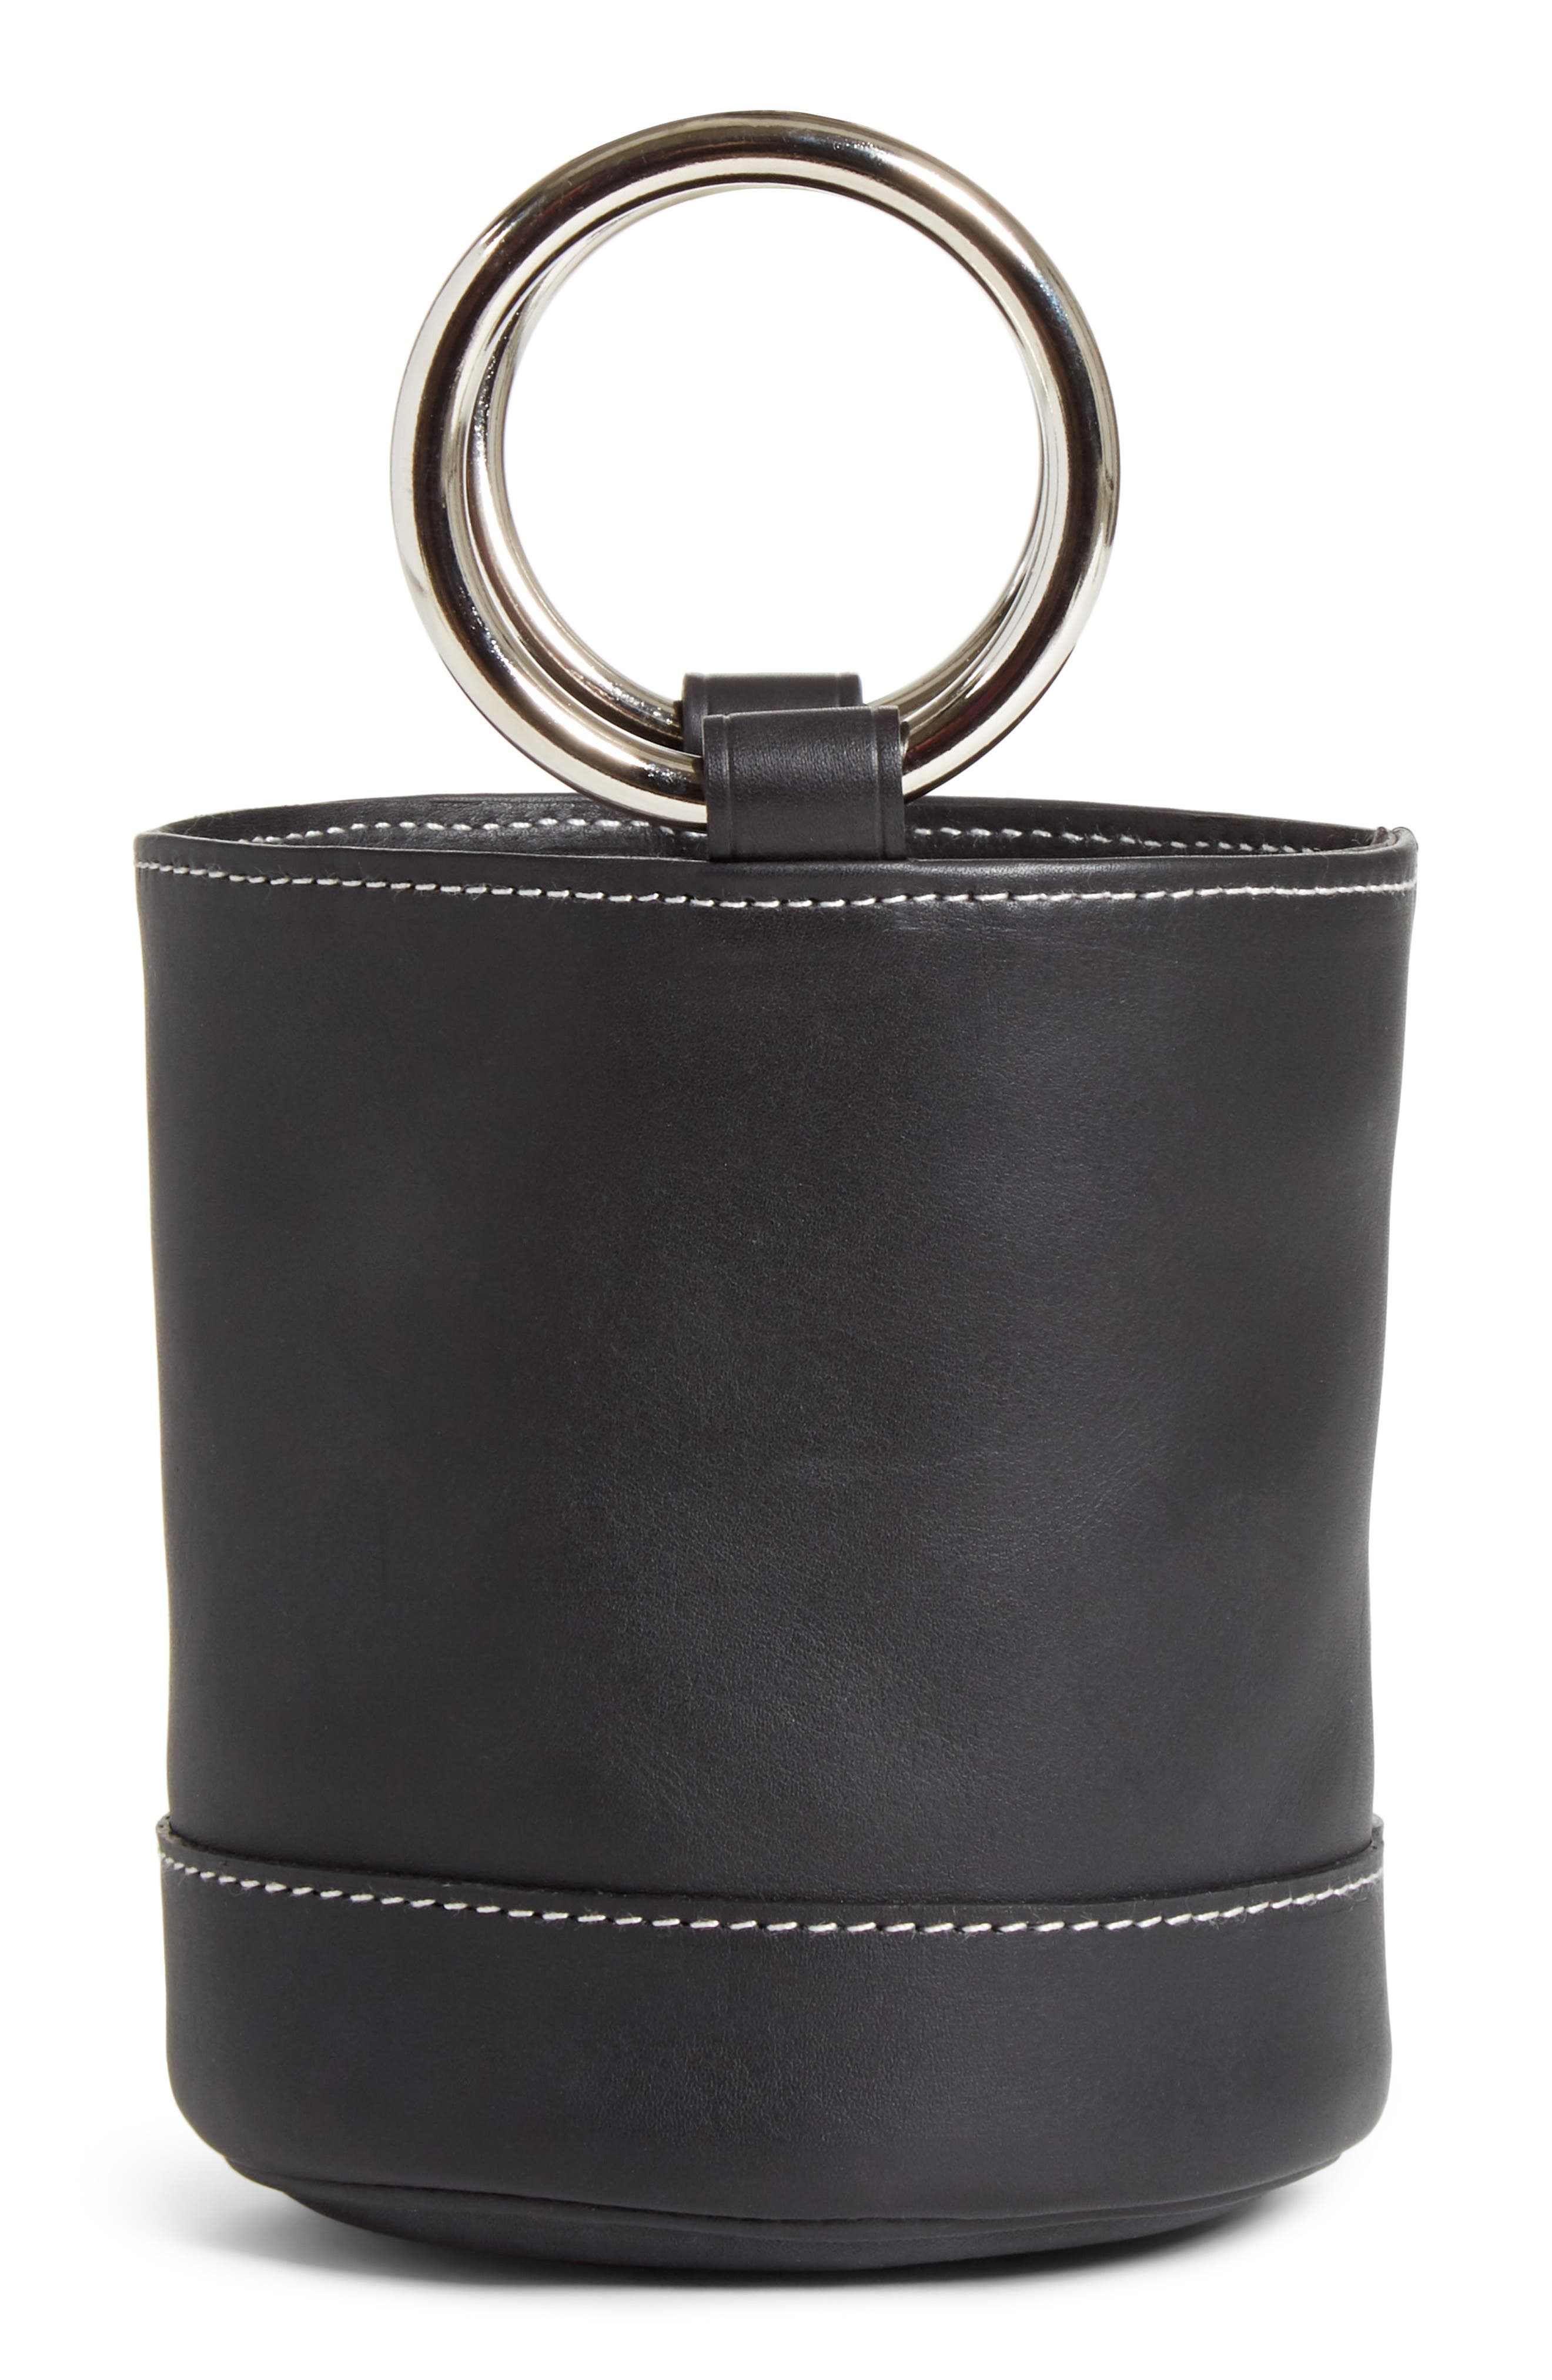 Bonsai 15 Calfskin Leather Bucket Bag,                             Main thumbnail 1, color,                             BLACK WITH WHITE STITCHING